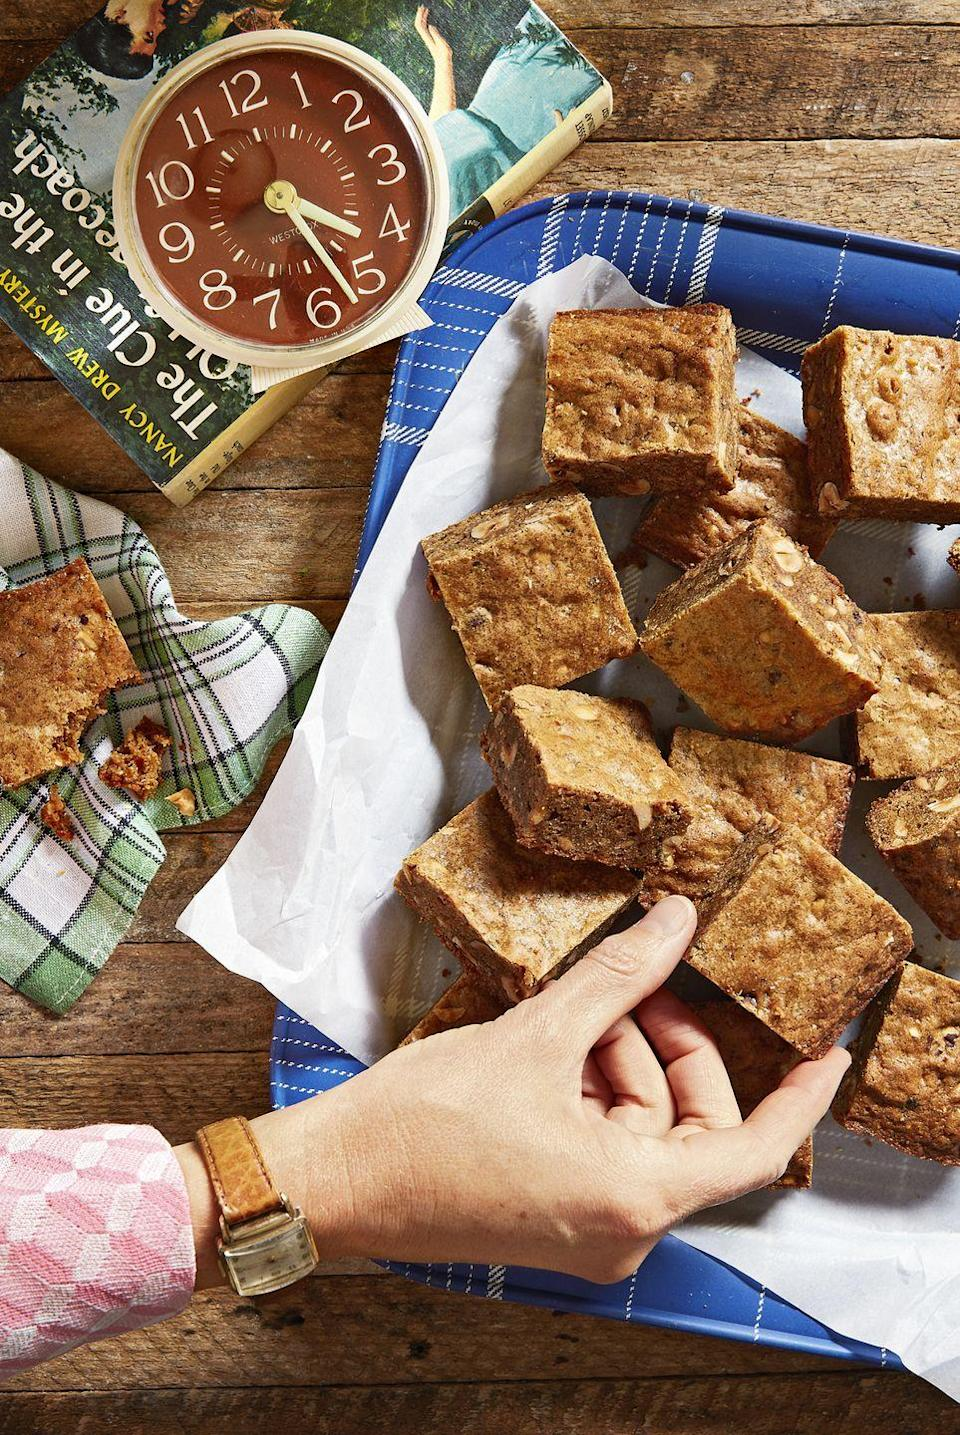 """<p>Dessert bars are so much more than just brownies. If your taste buds favor brown butter over chocolate, give these a whirl.</p><p><strong><a href=""""https://www.countryliving.com/food-drinks/recipes/a44613/brown-butter-hazelnut-blondies-recipe/"""" rel=""""nofollow noopener"""" target=""""_blank"""" data-ylk=""""slk:Get the recipe"""" class=""""link rapid-noclick-resp"""">Get the recipe</a>.</strong></p>"""